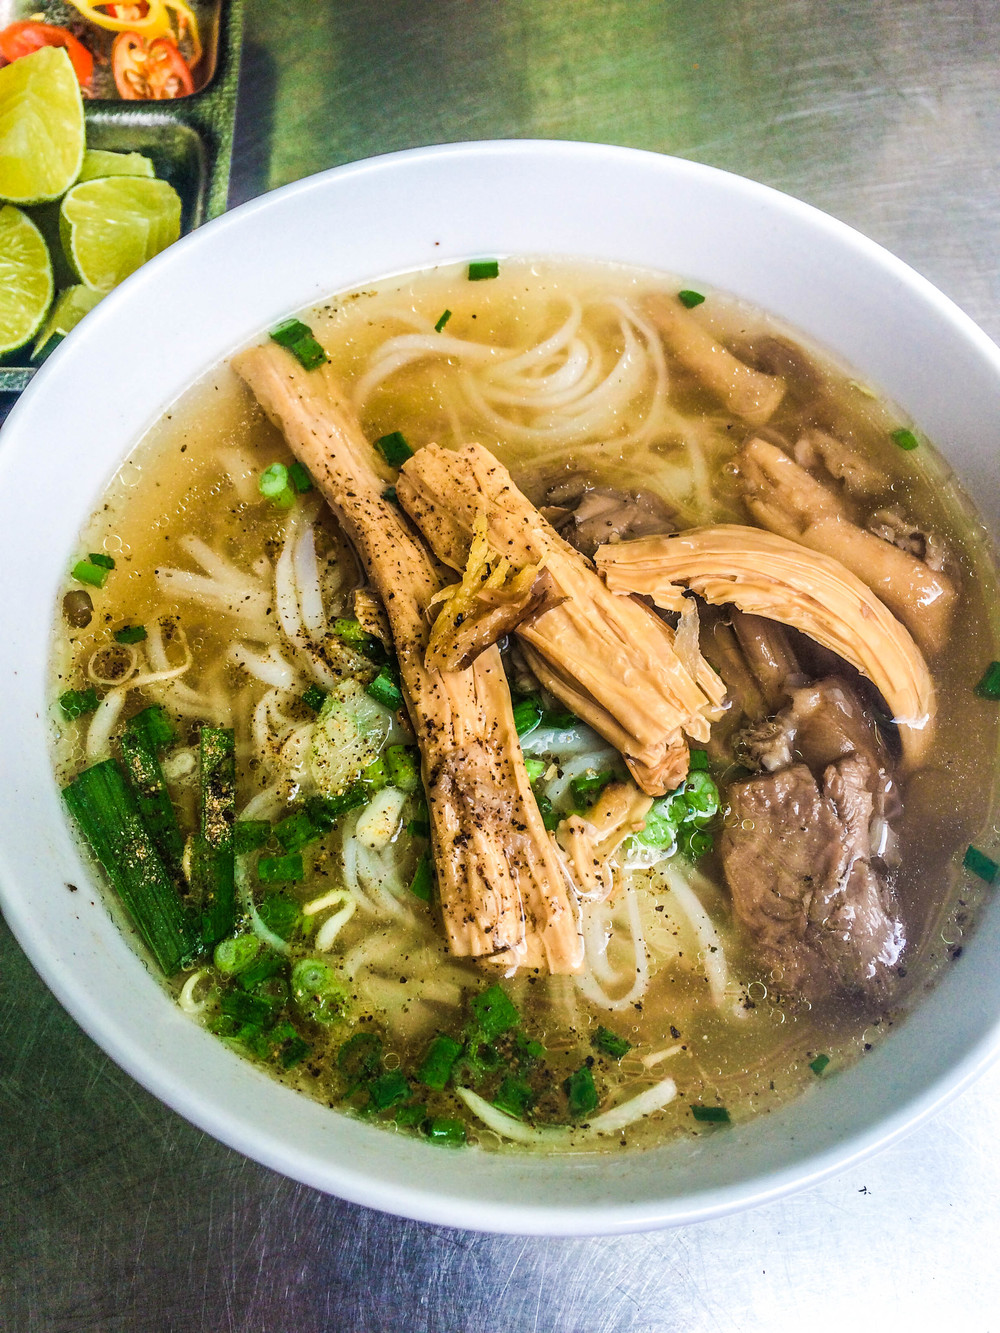 The big bowl of Pho from Pho Chay Nhu